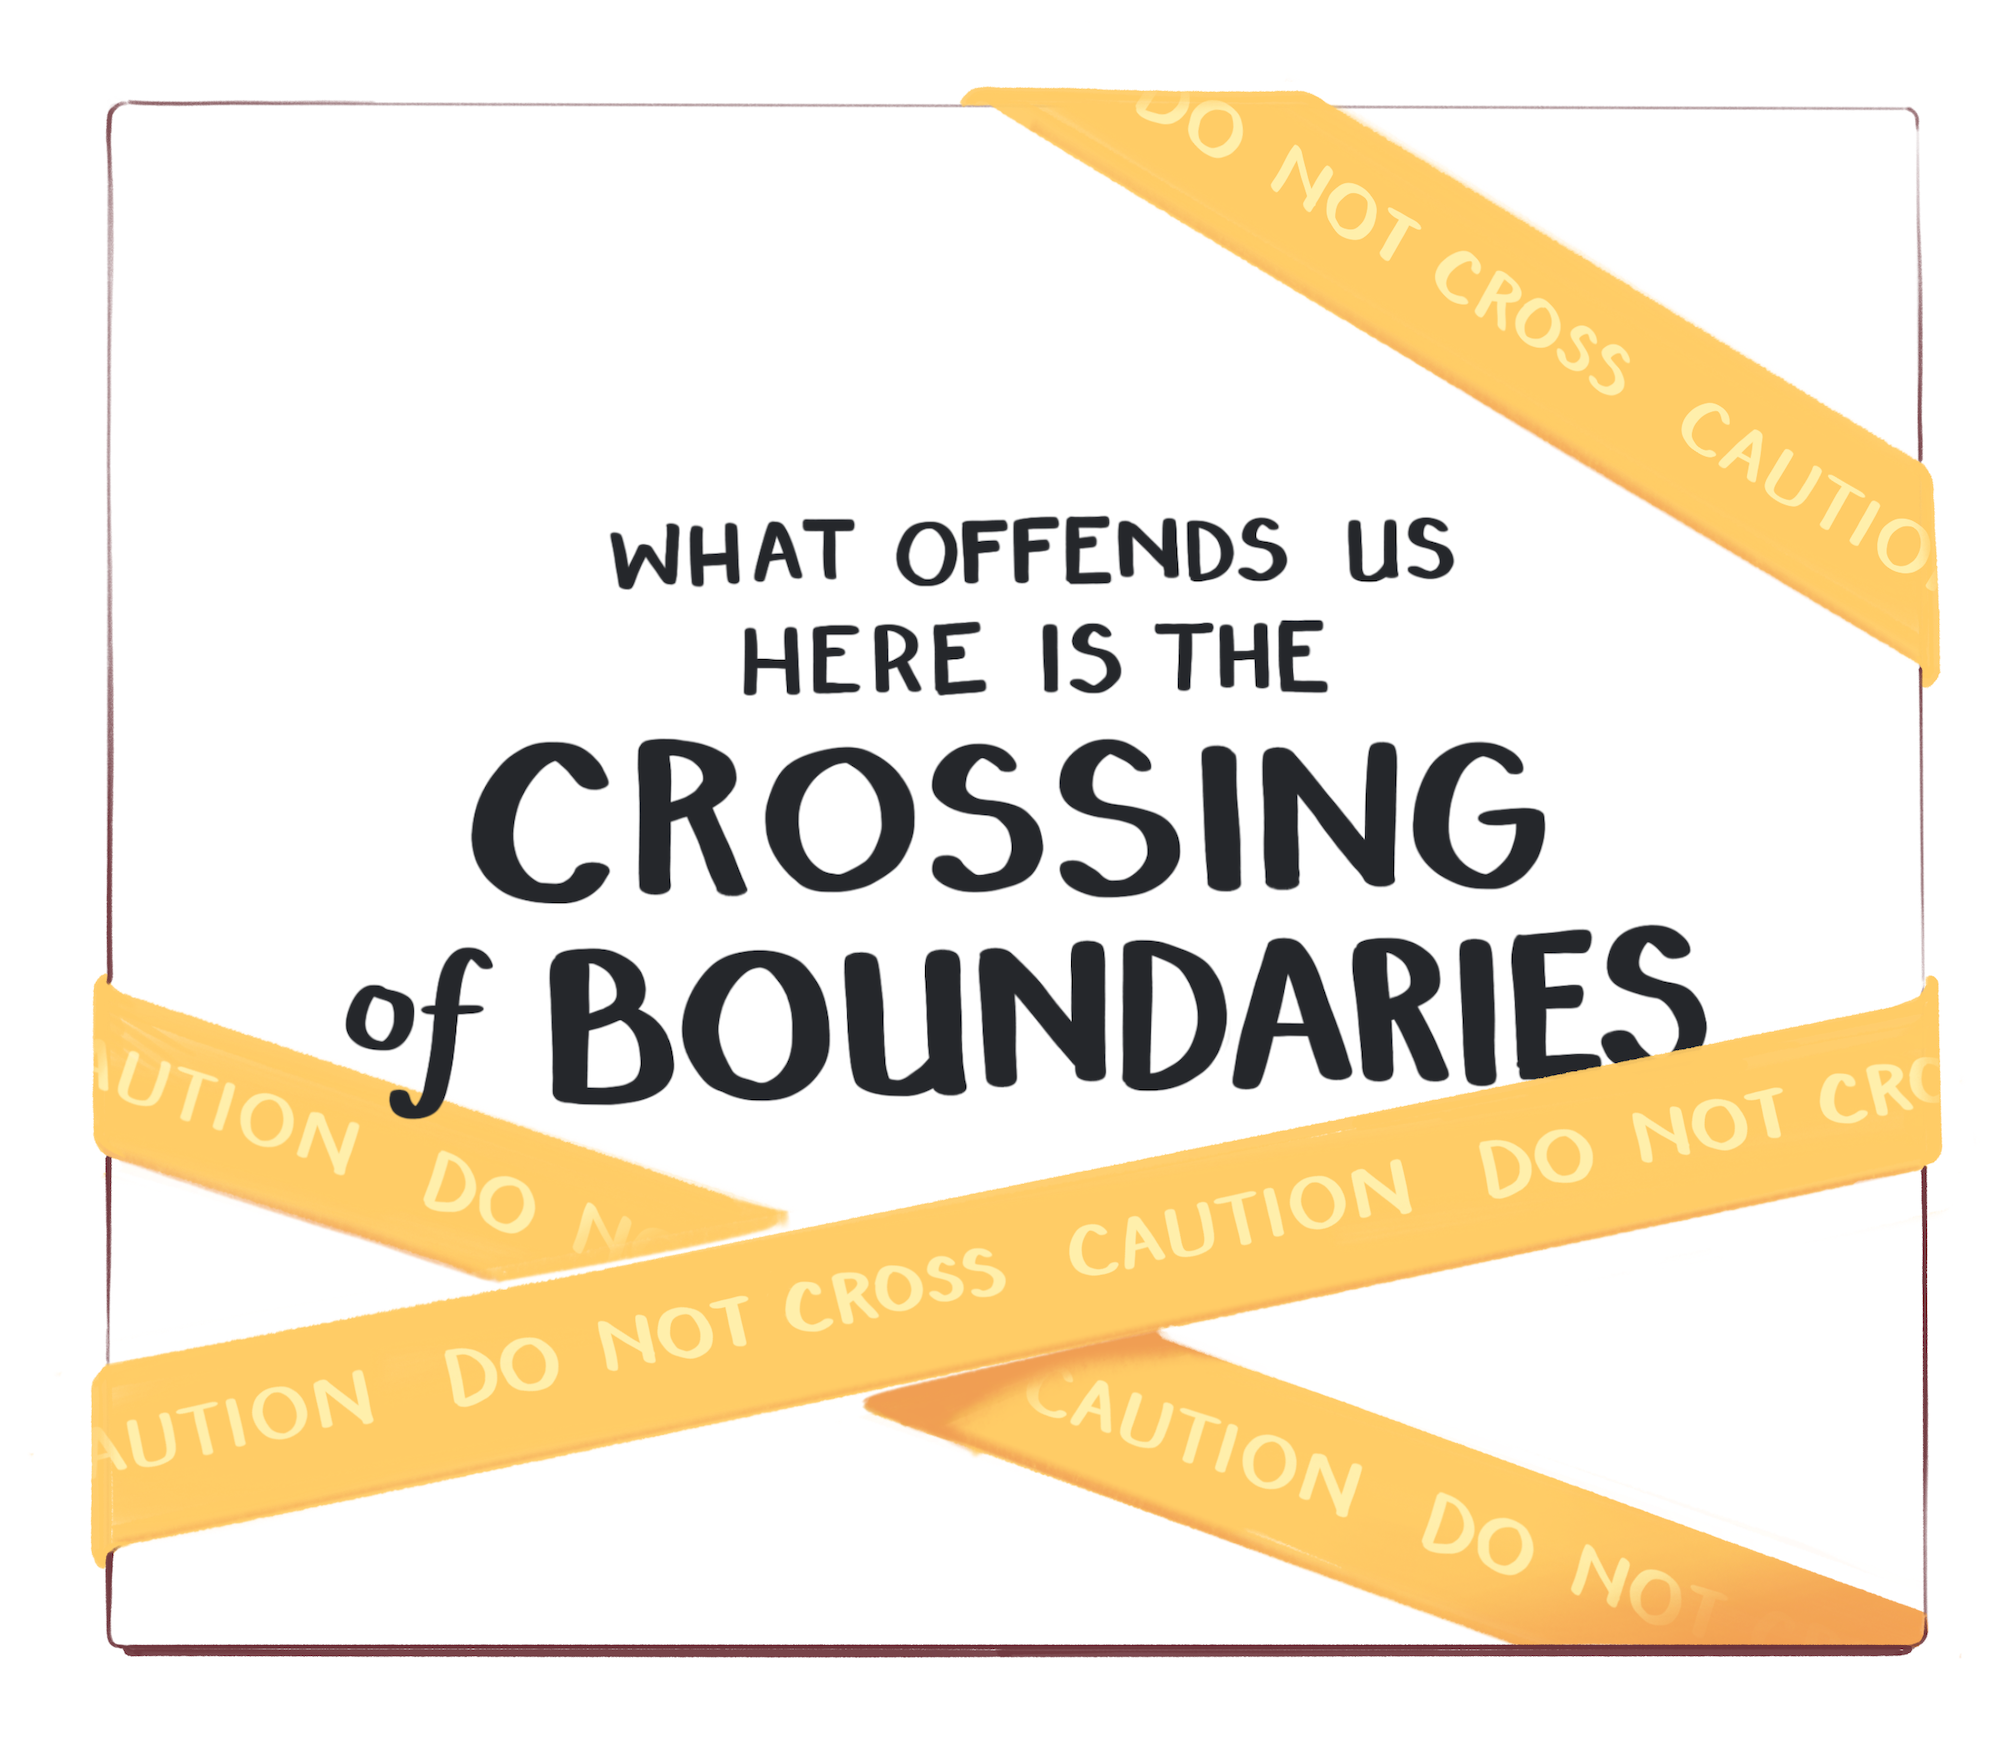 What offends us here is the crossing of boundaries